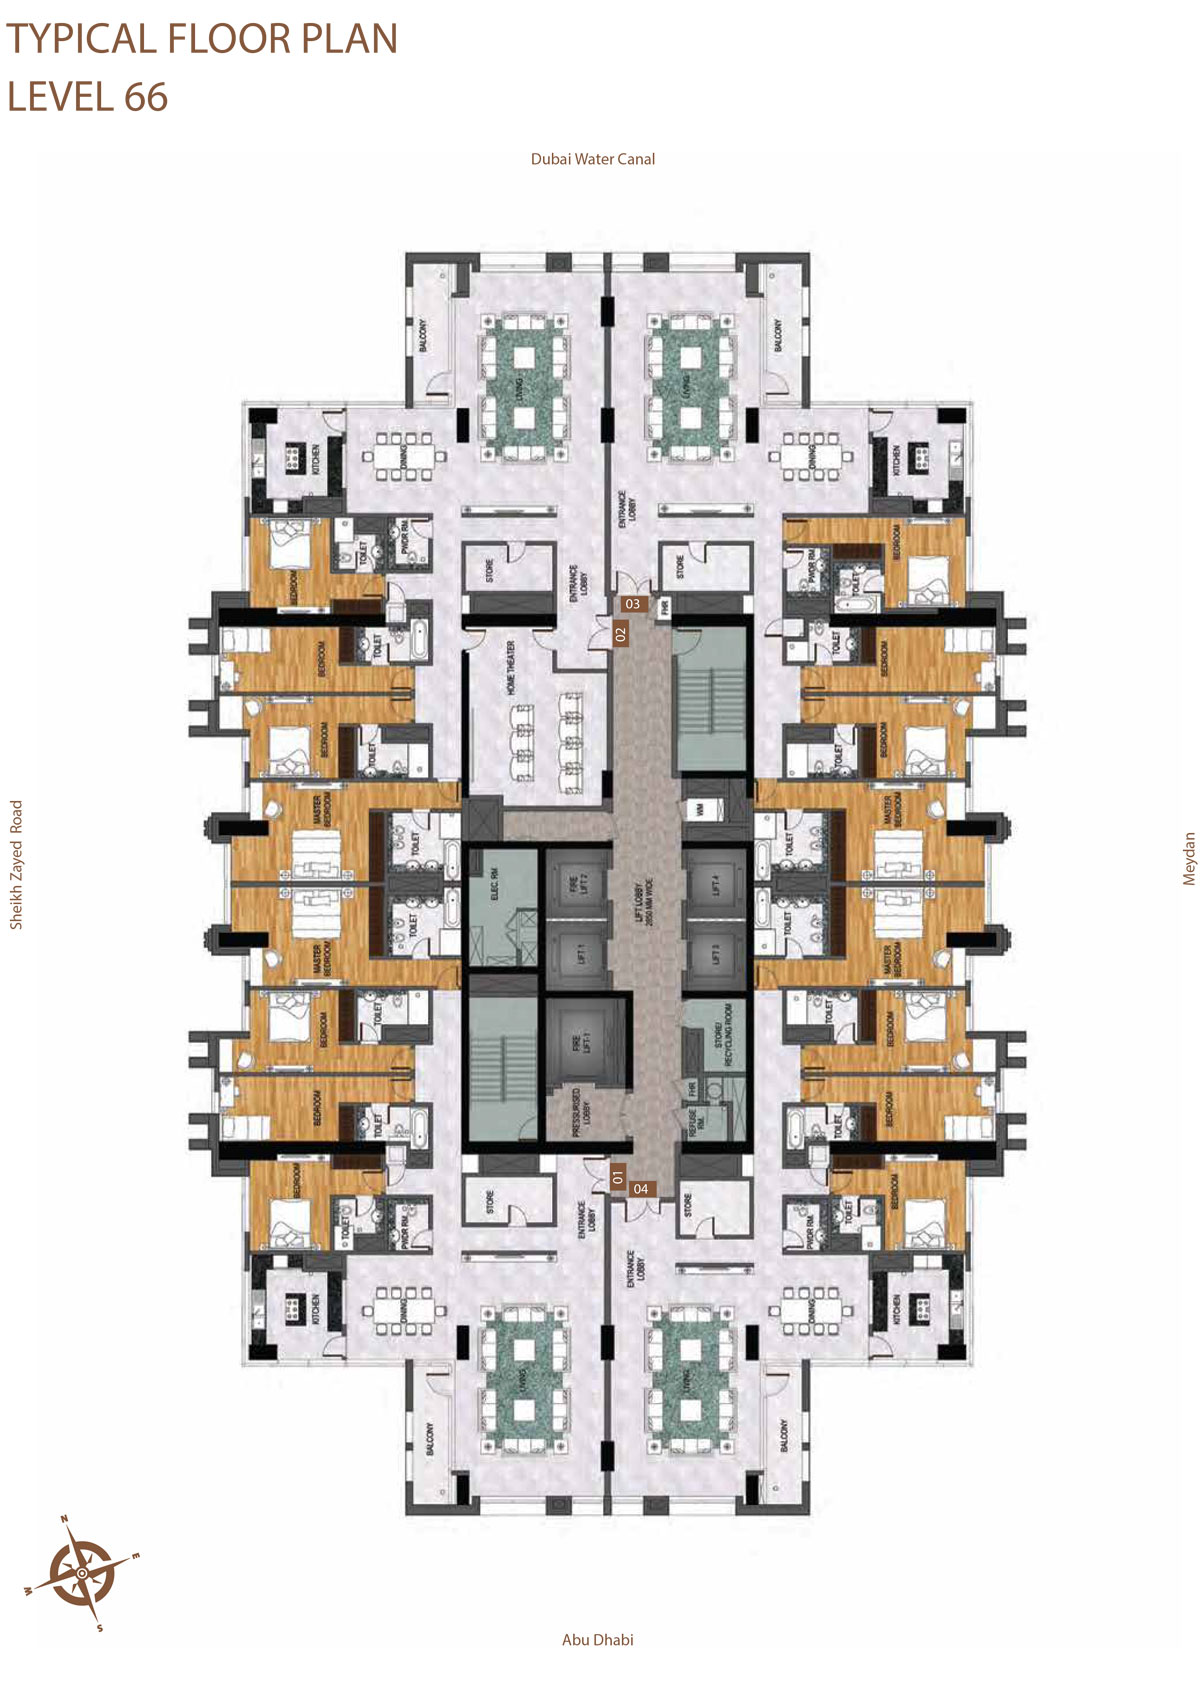 Level 66     Typical Floor Layout Plan